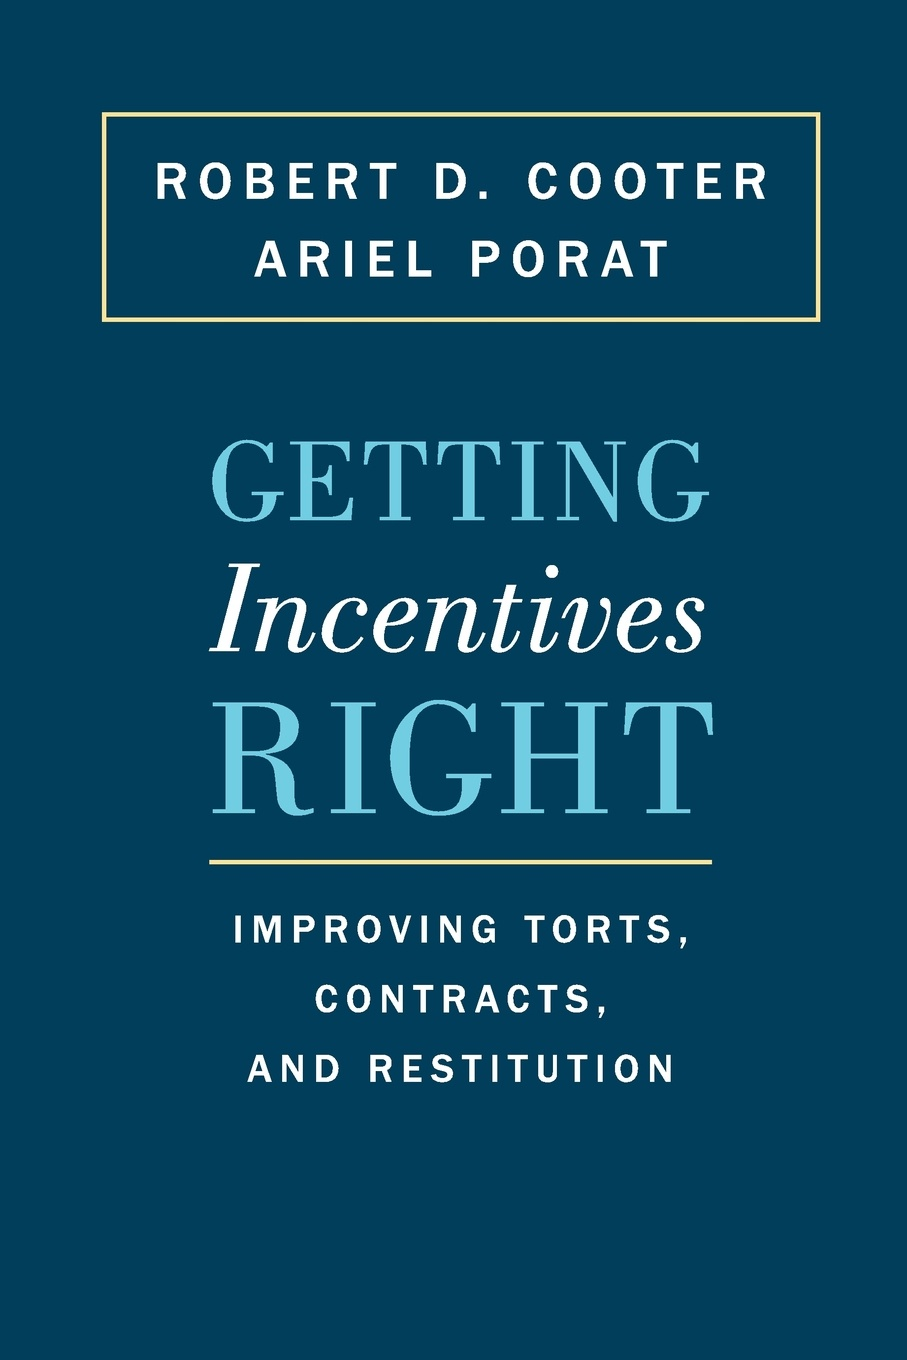 Robert D. Cooter, Ariel Porat Getting Incentives Right. Improving Torts, Contracts, and Restitution tort law